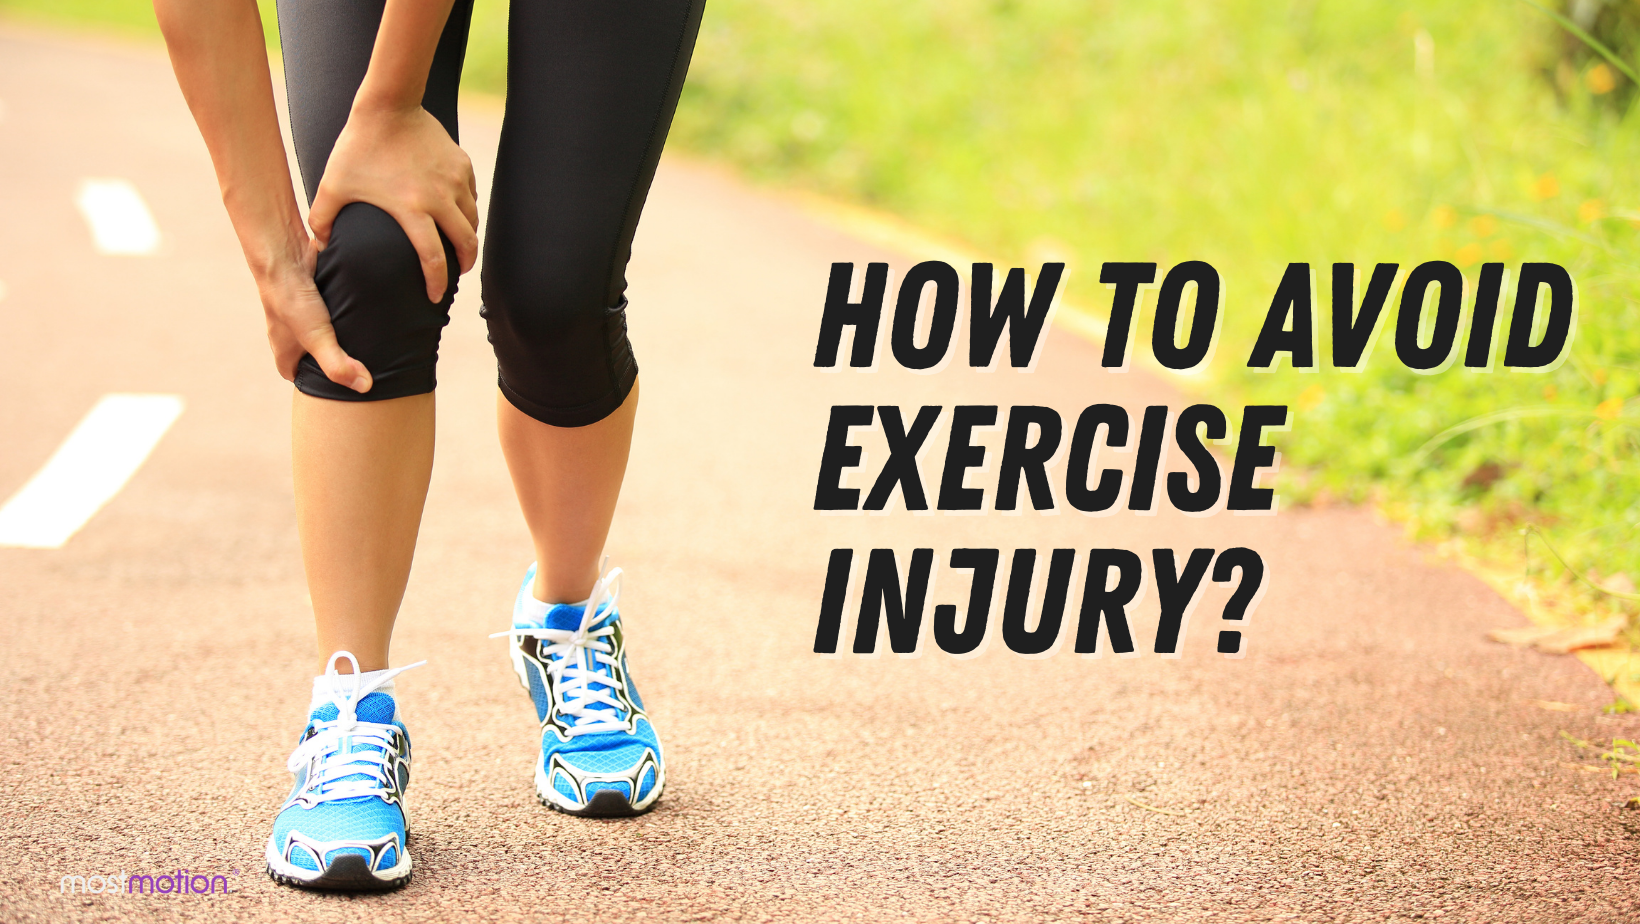 How to Avoid Exercise Injuries (and it's not what you think)